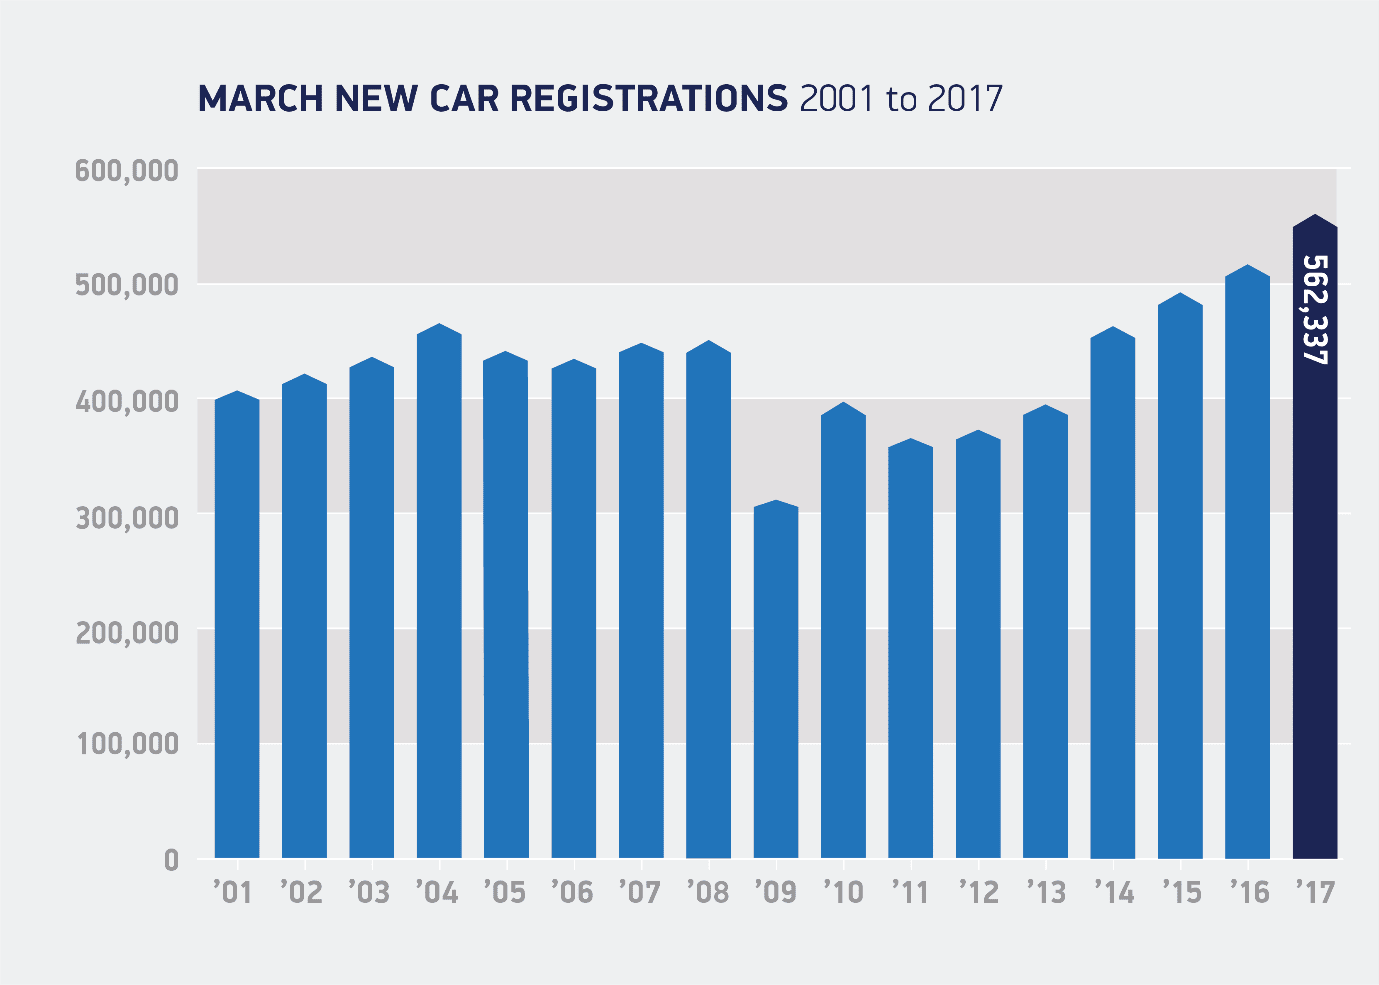 March new car registrations 2017